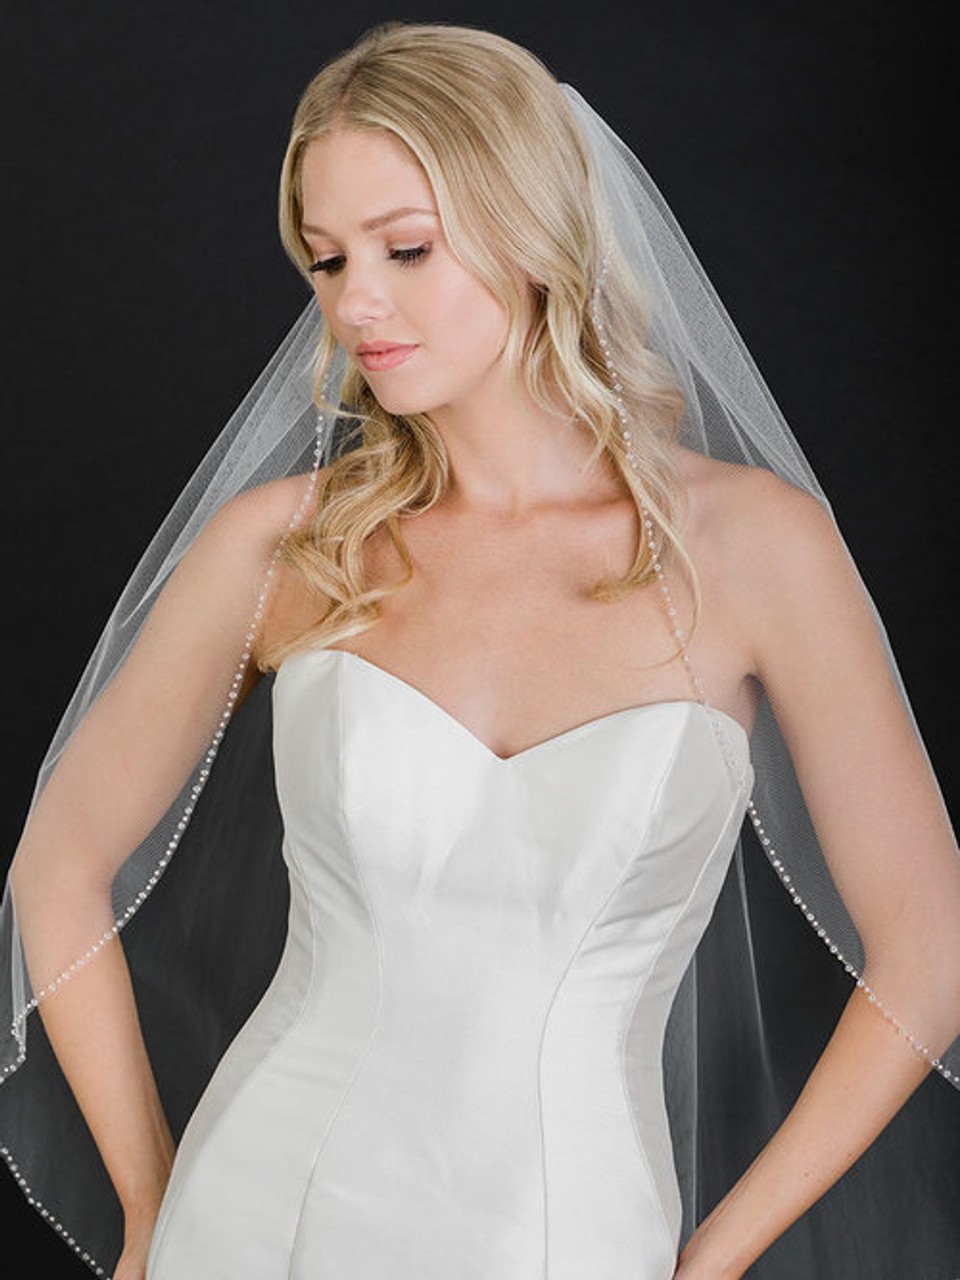 Bel Aire Bridal Veil  V7501 - 1-tier fingertip veil with crystals and champagne pearls